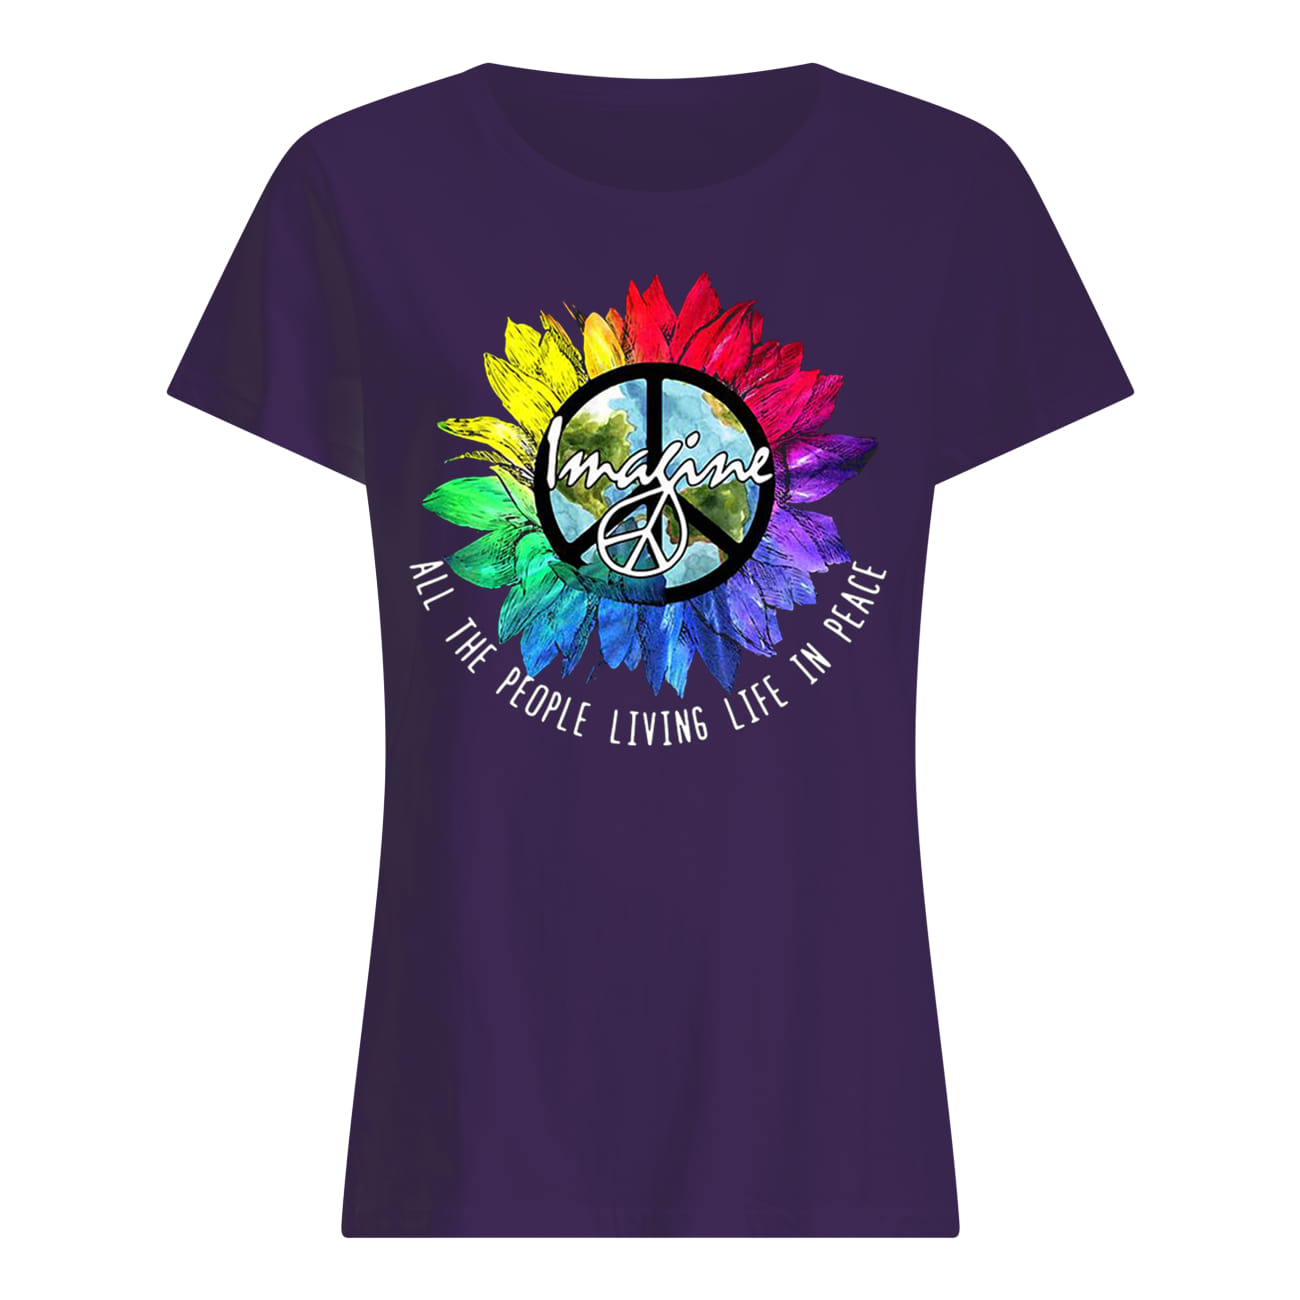 Imagine all the people living life in peace rainbow sunflower LGBTQ pride lady shirt